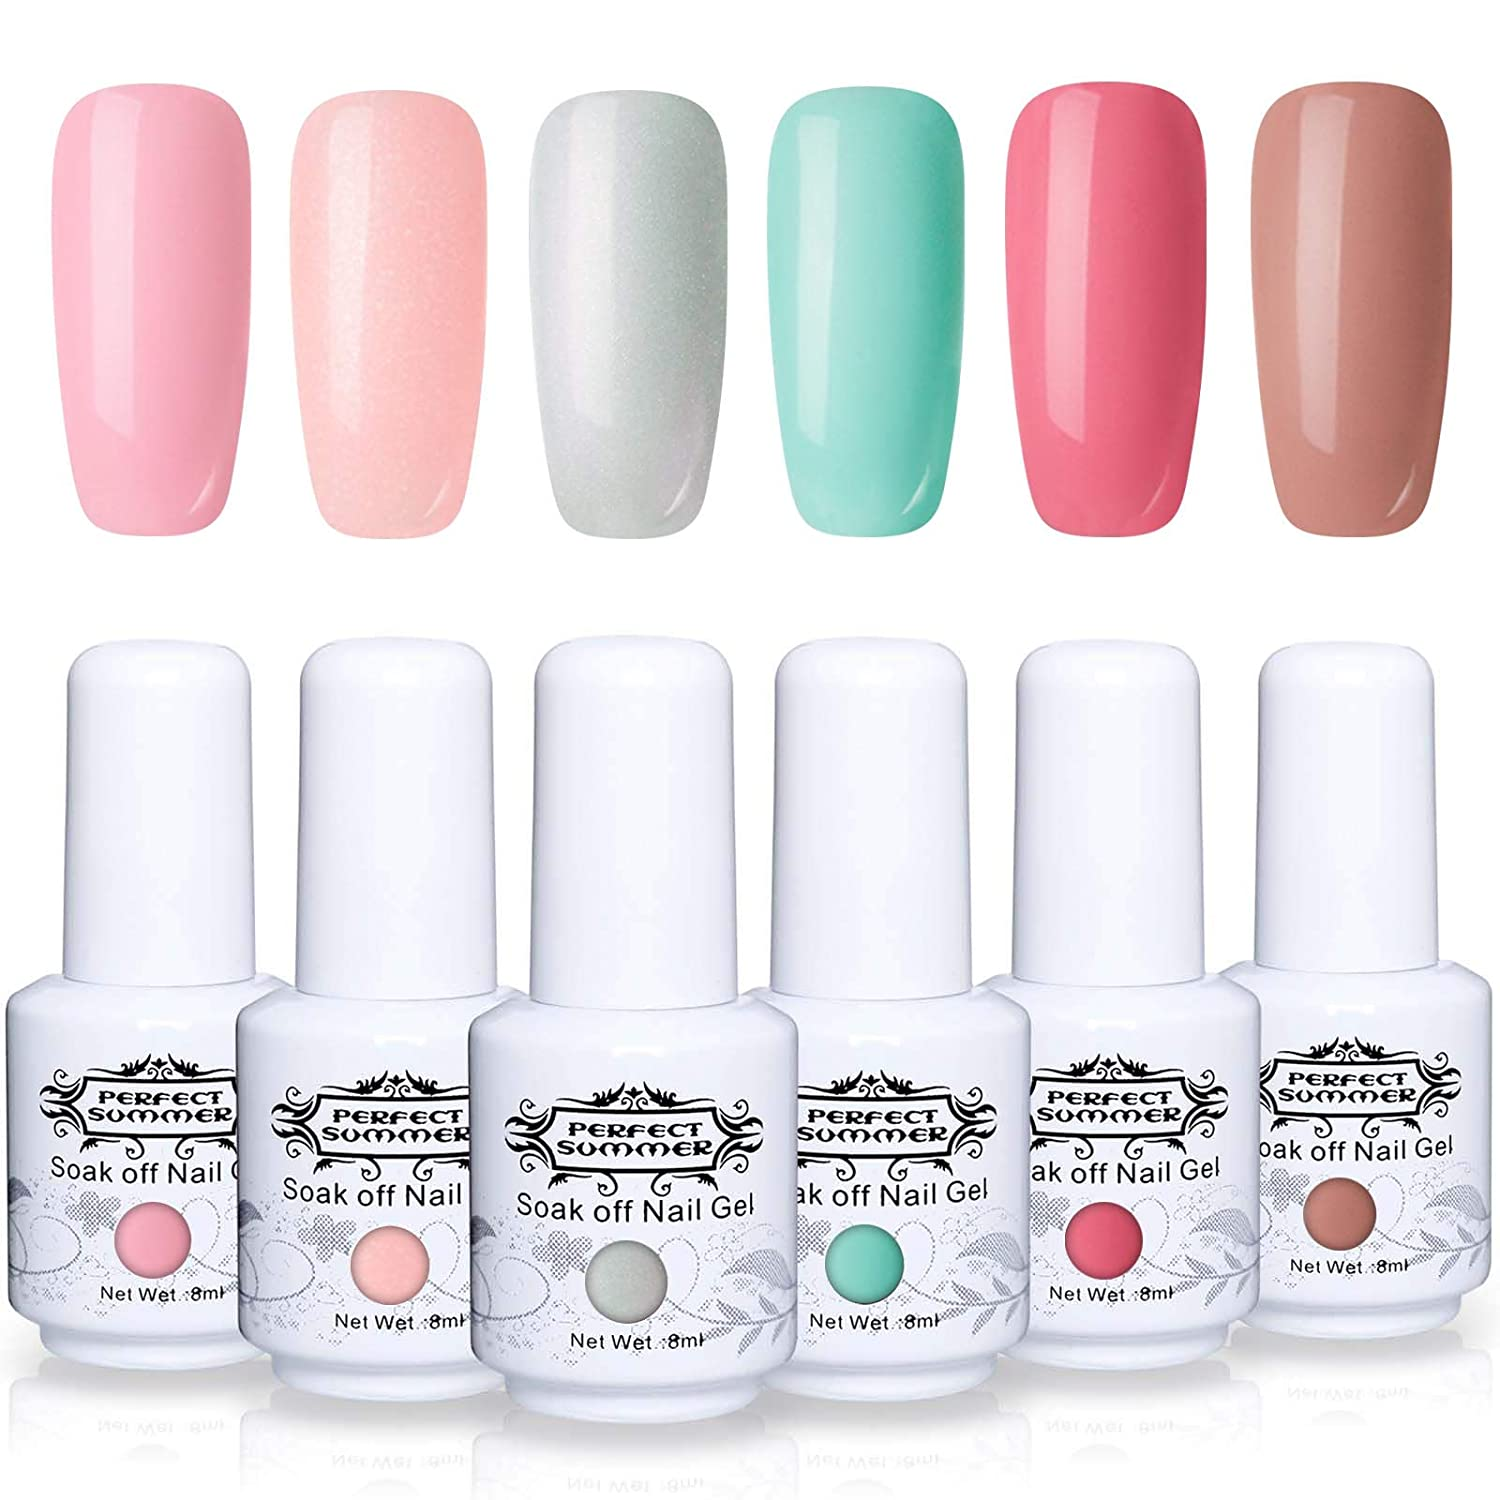 Amazon.com: Perfect Summer Soak Off Gel Esmalte de Uñas ...